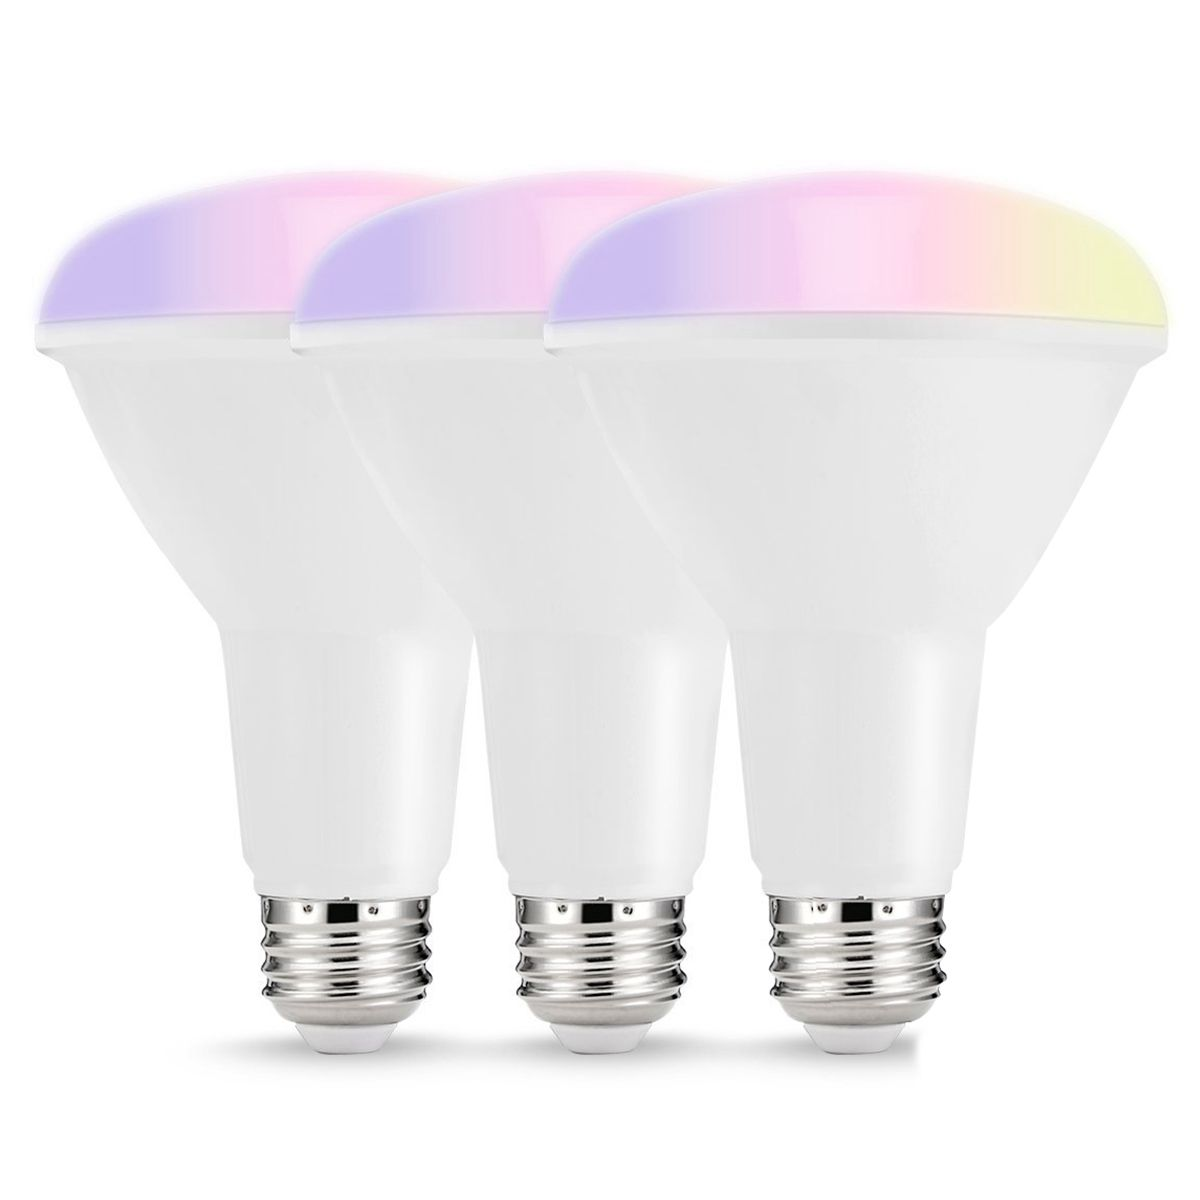 Smart LED Bulbs,Multicolored WIFI LED Lights, BR30 Dimmable Recessed Light Bulbs, 75W 80W Equivalent Flood Light, Compatible wit